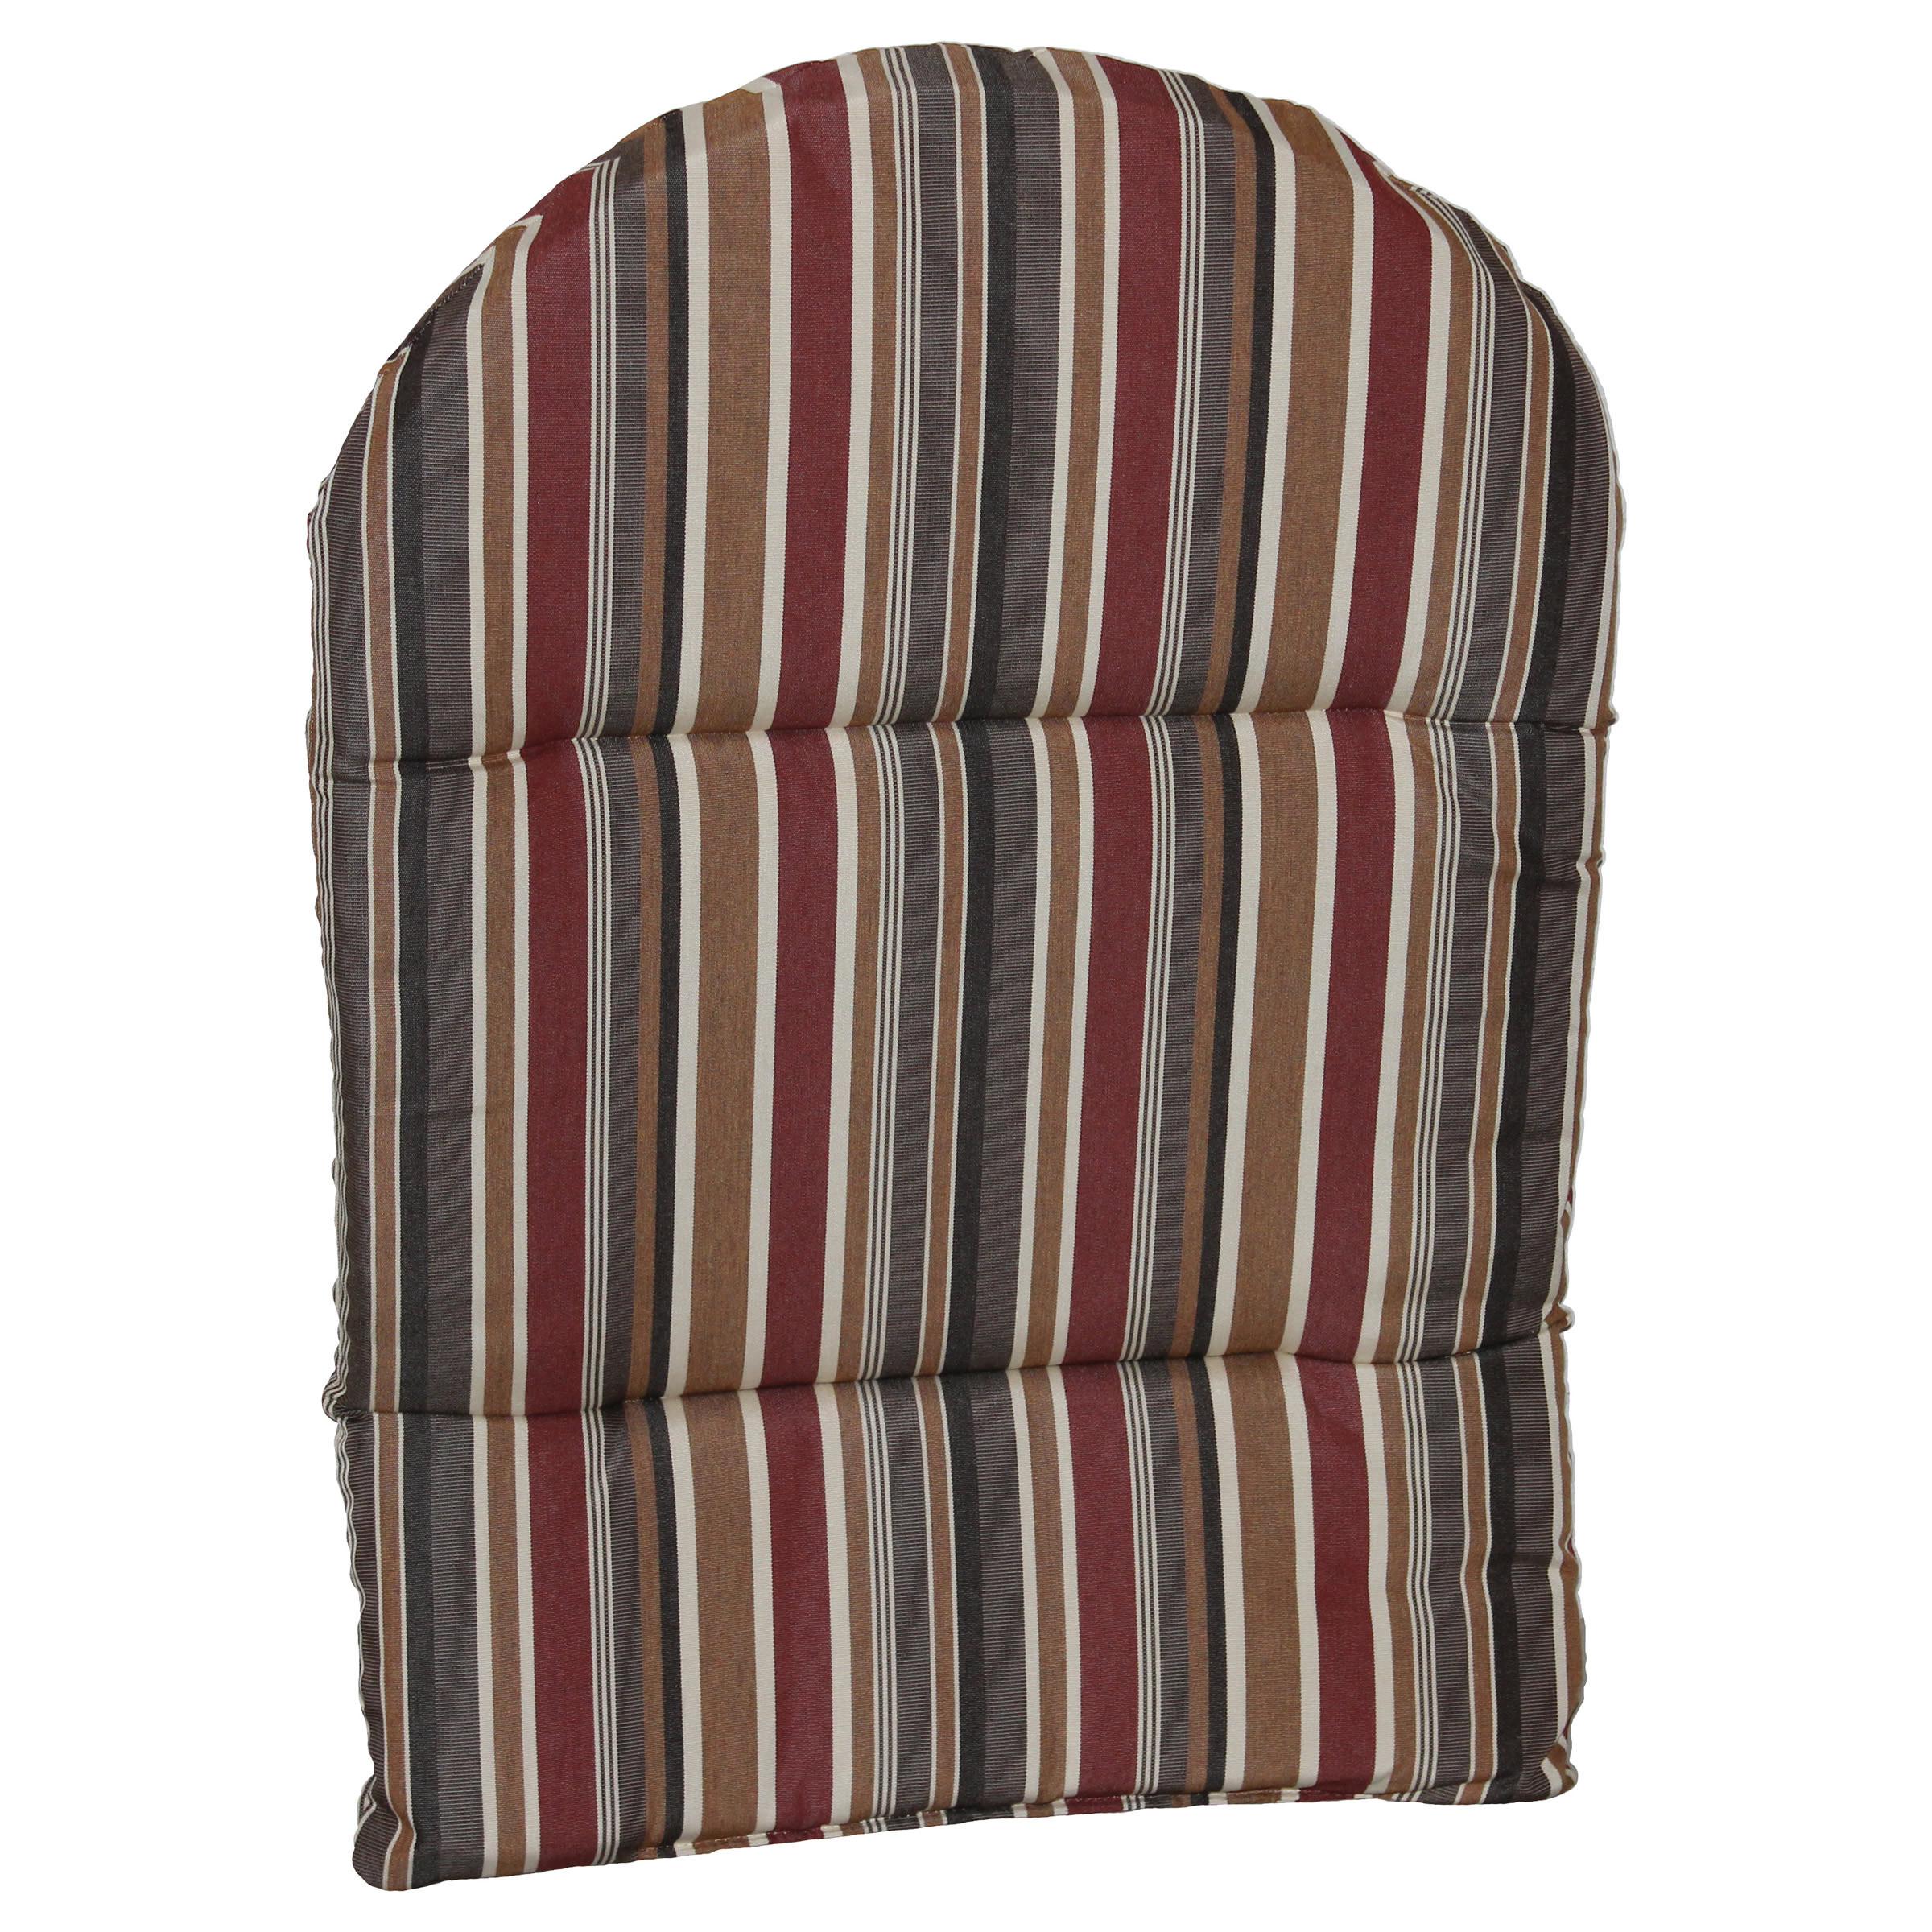 Back Cushion - does include tie-ons